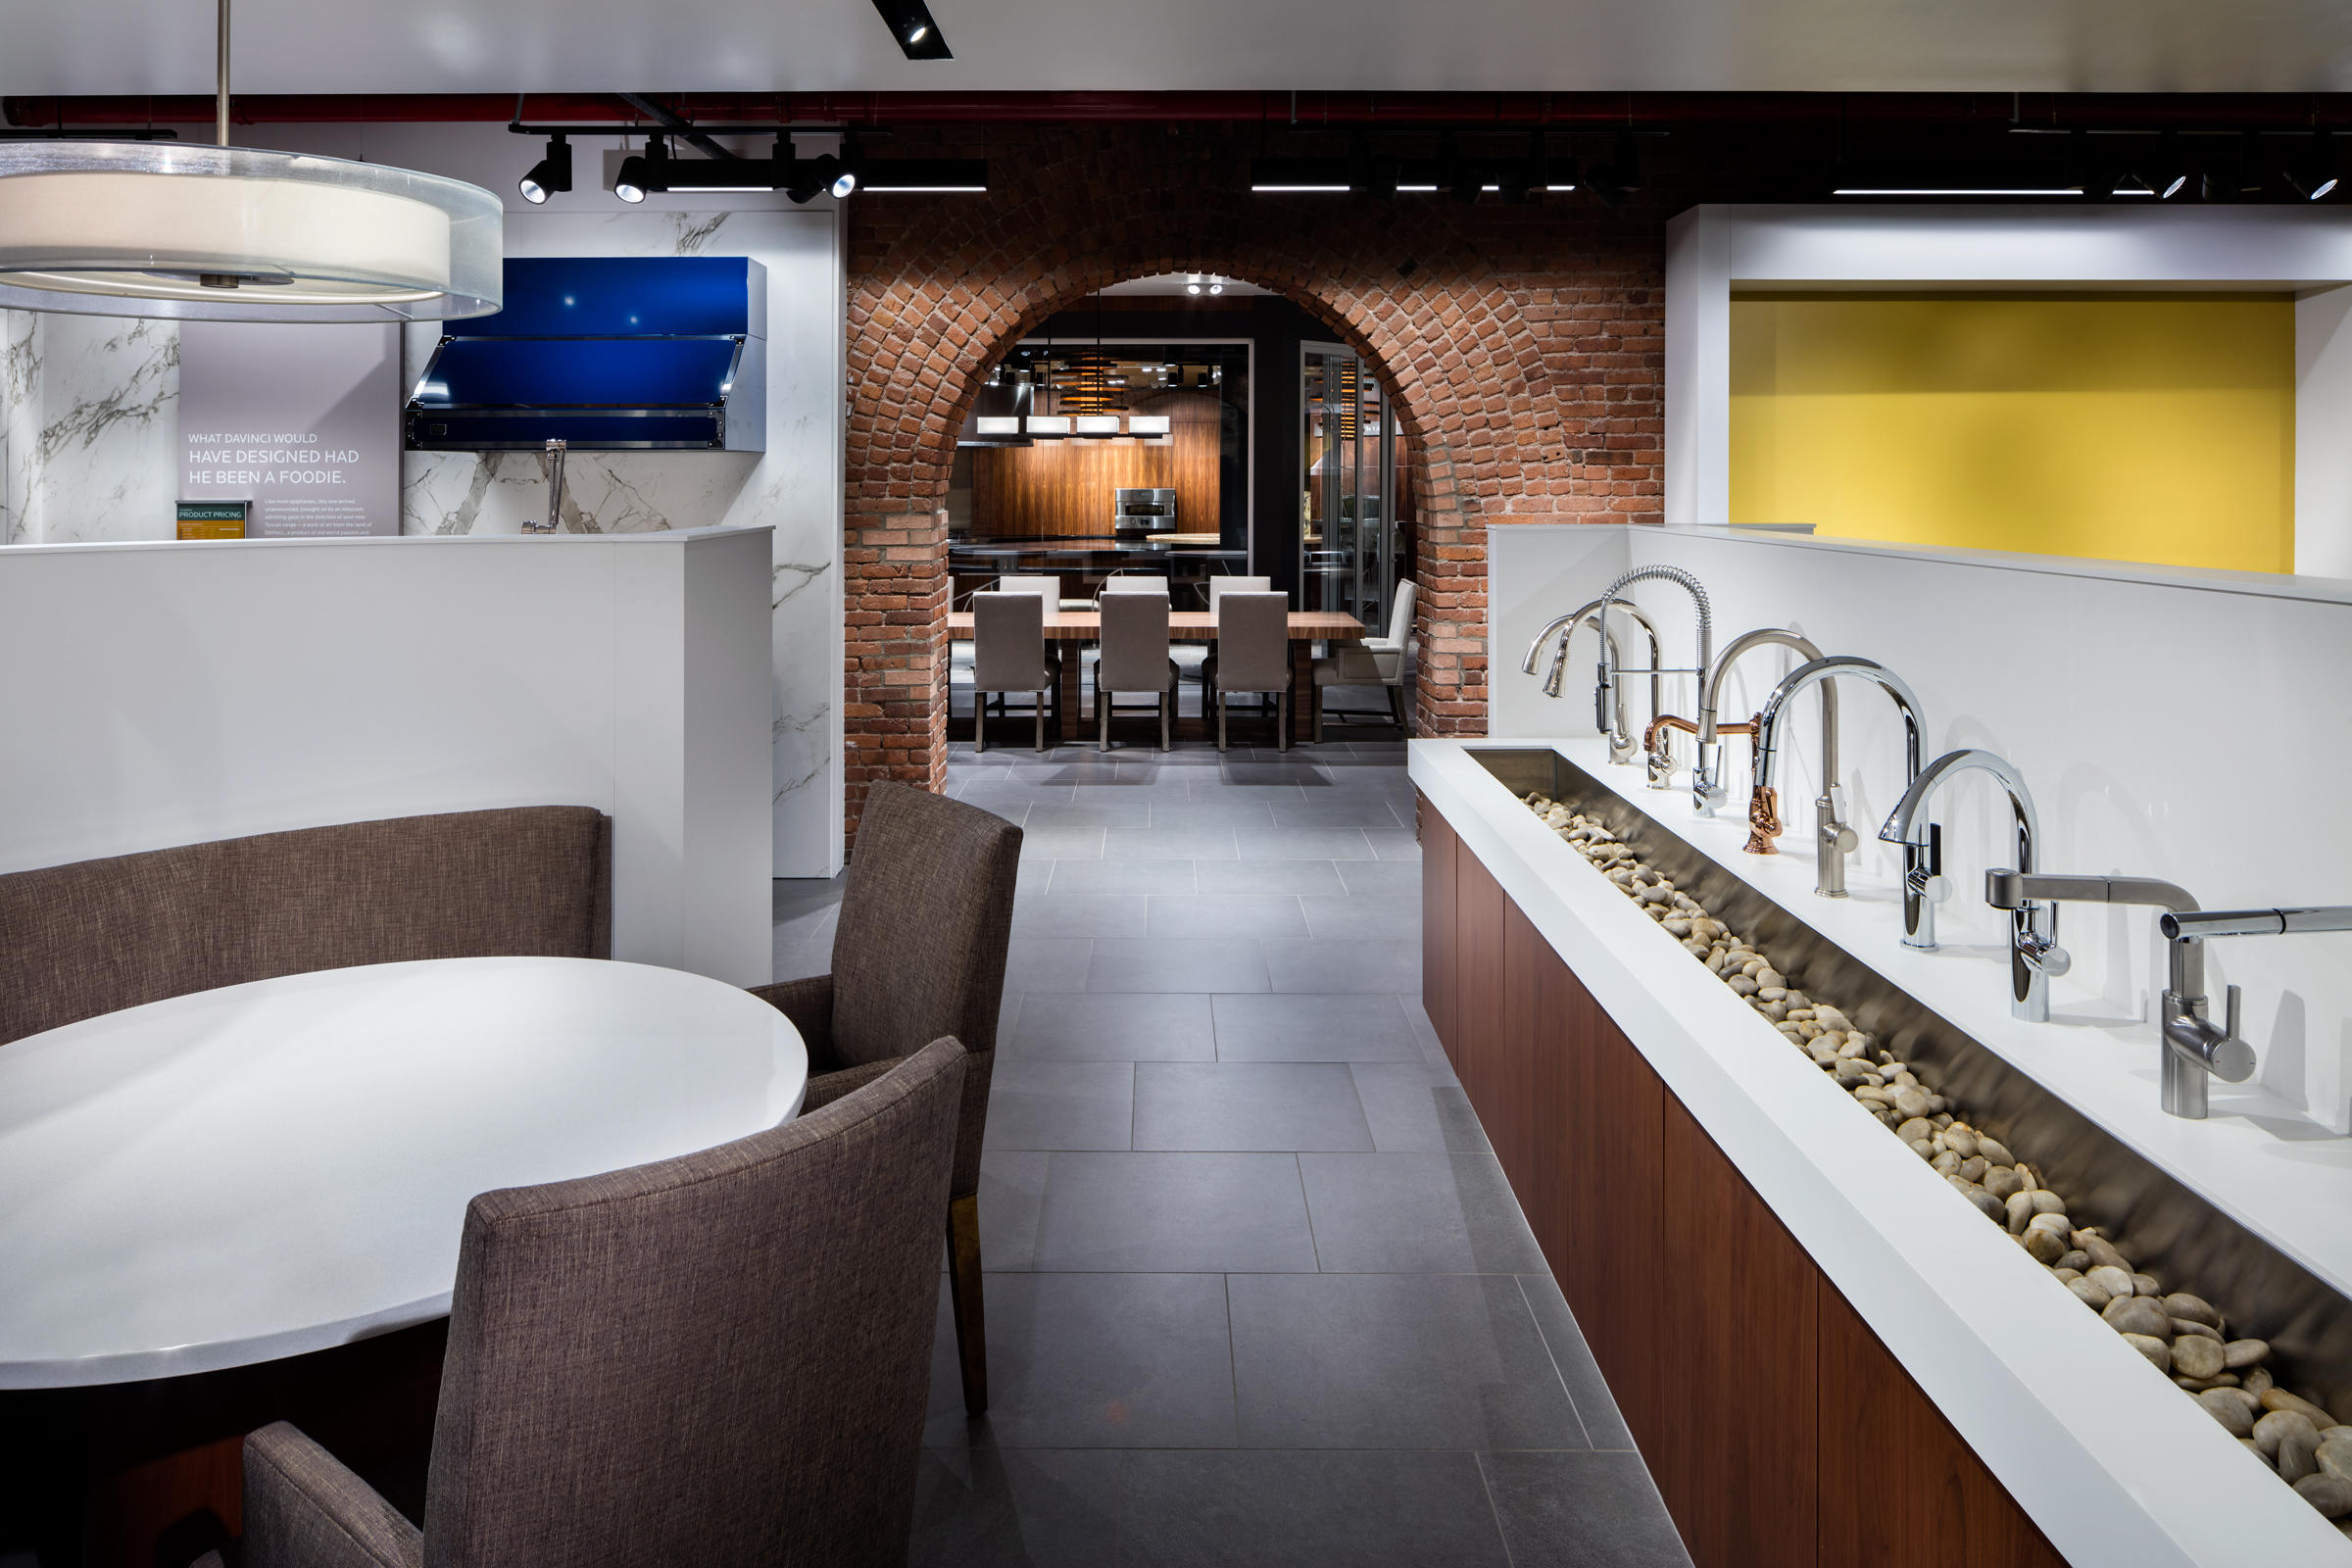 Pirch New York image 11